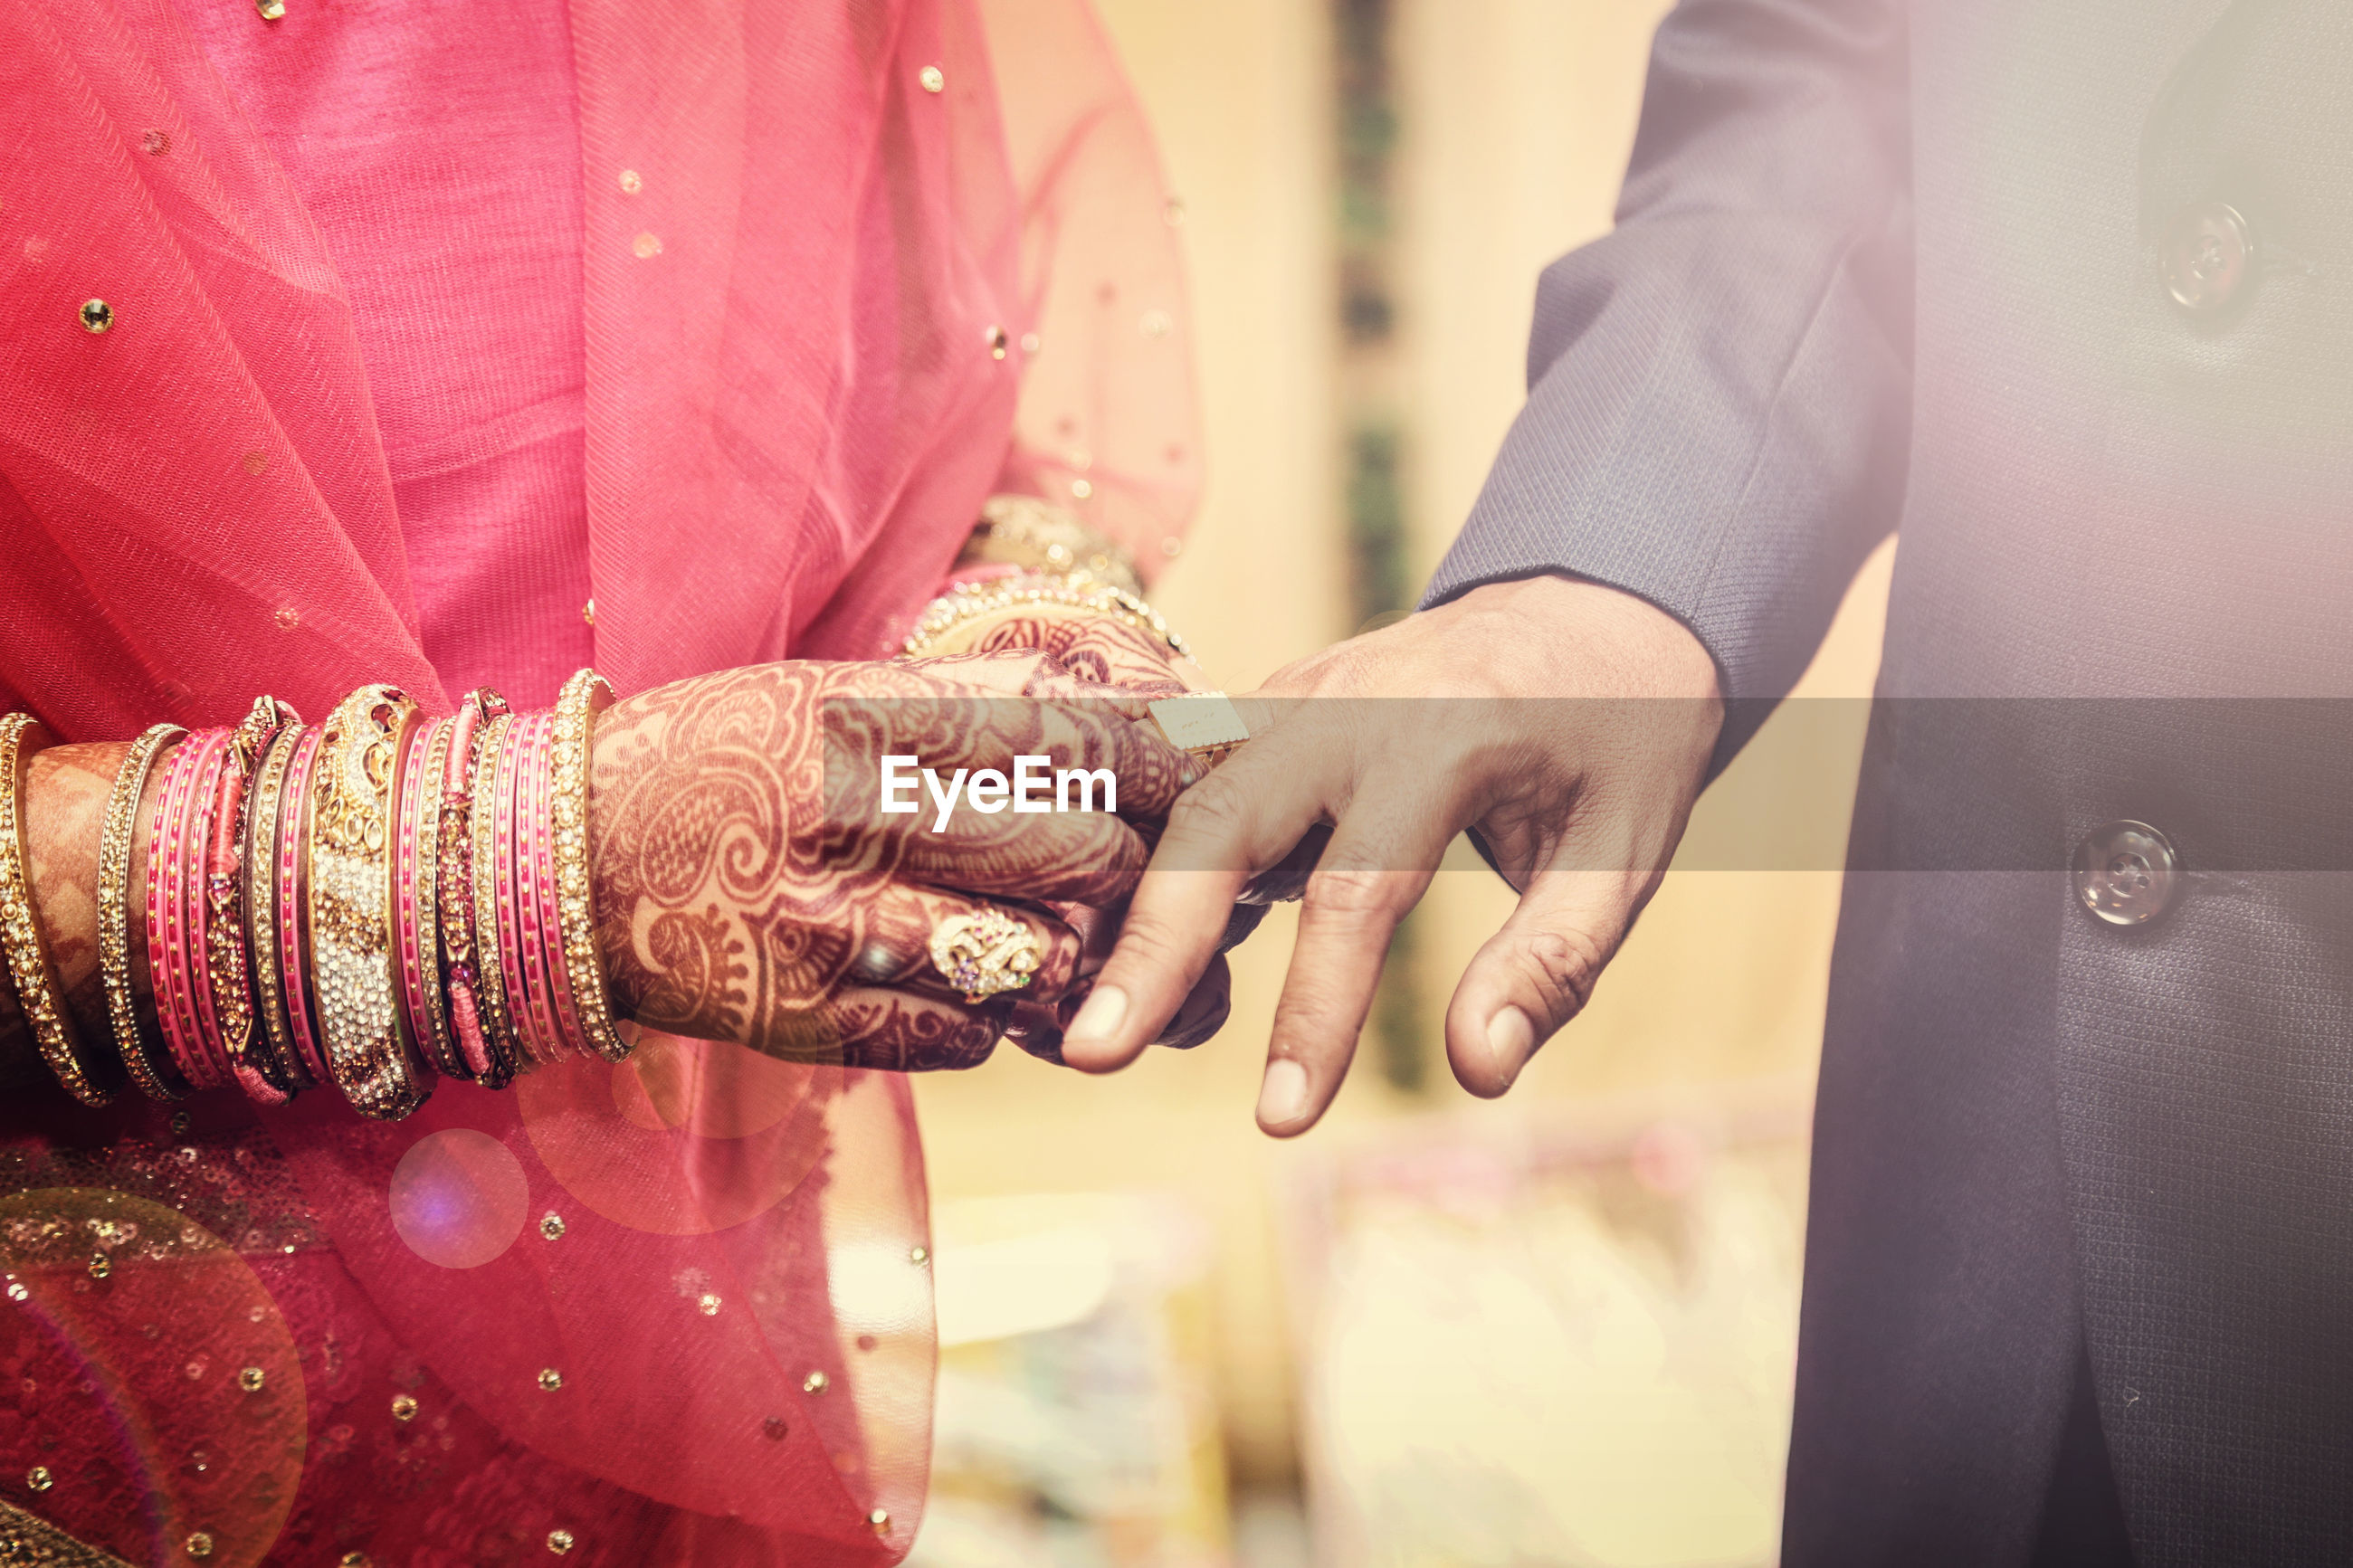 Midsection of bride putting ring on bridegroom during wedding